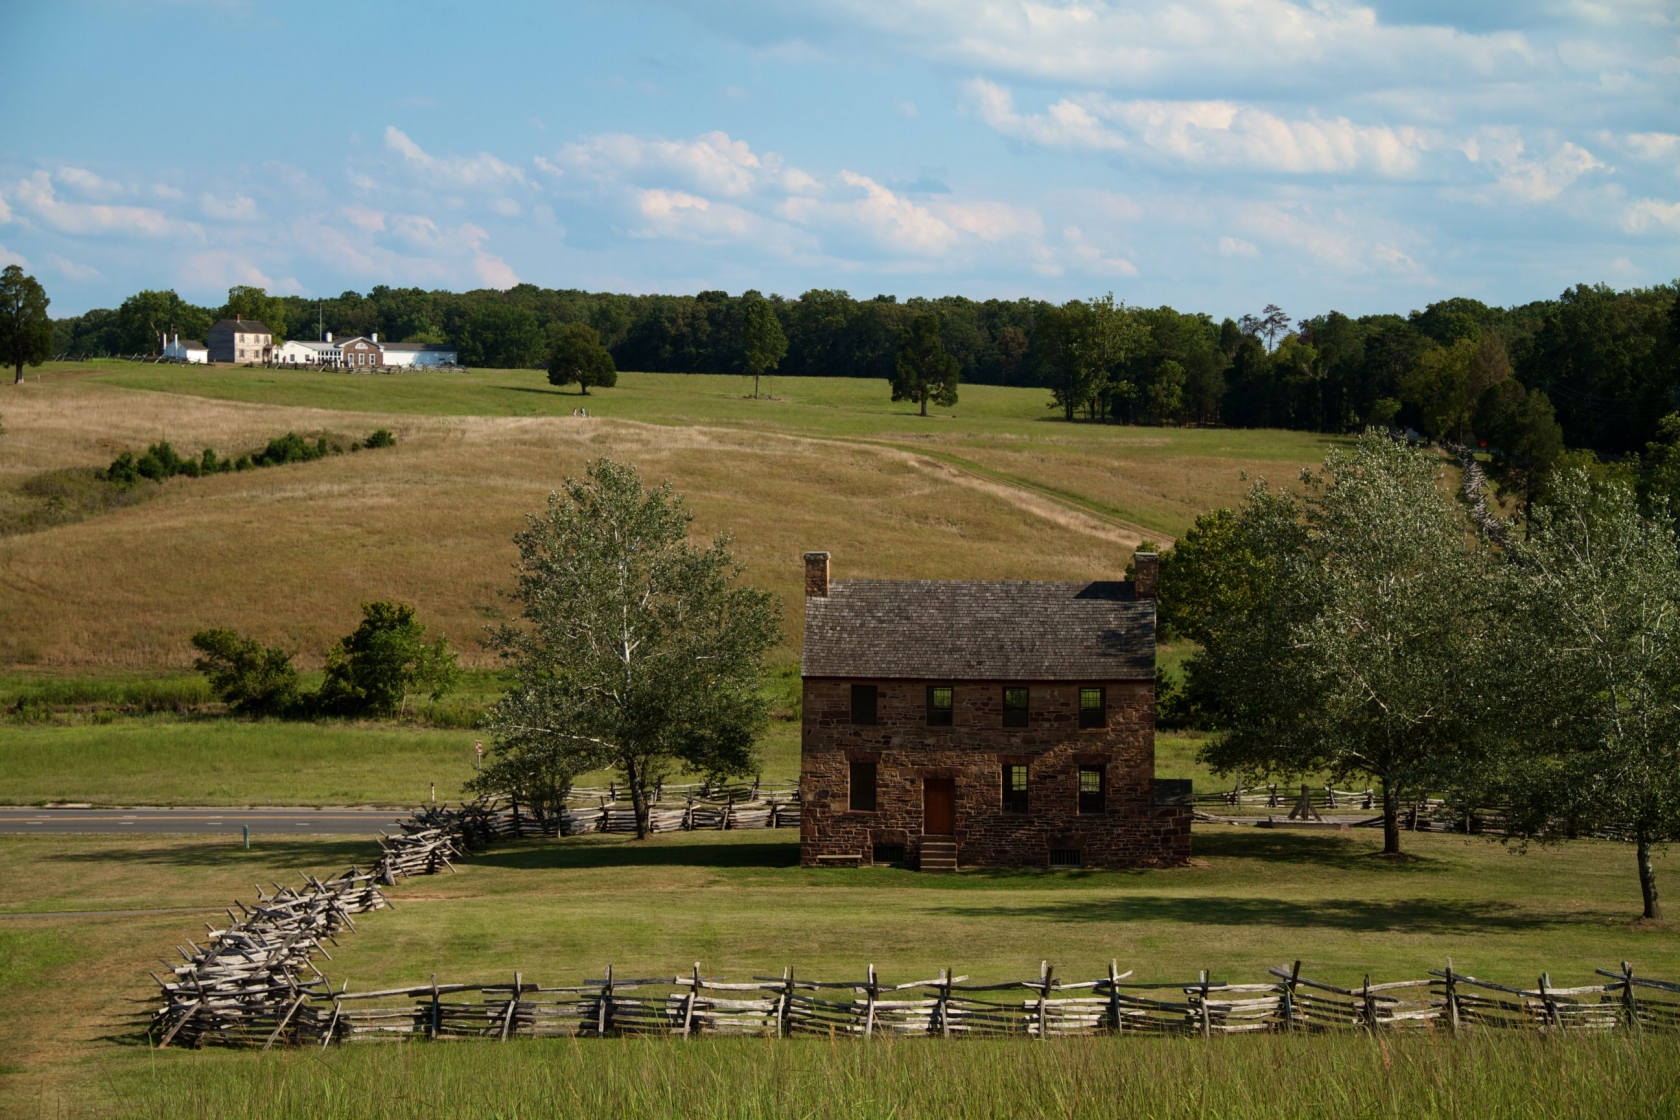 Virginia's Manassas National Battlefield Park, old stone house and trees line the green hills.